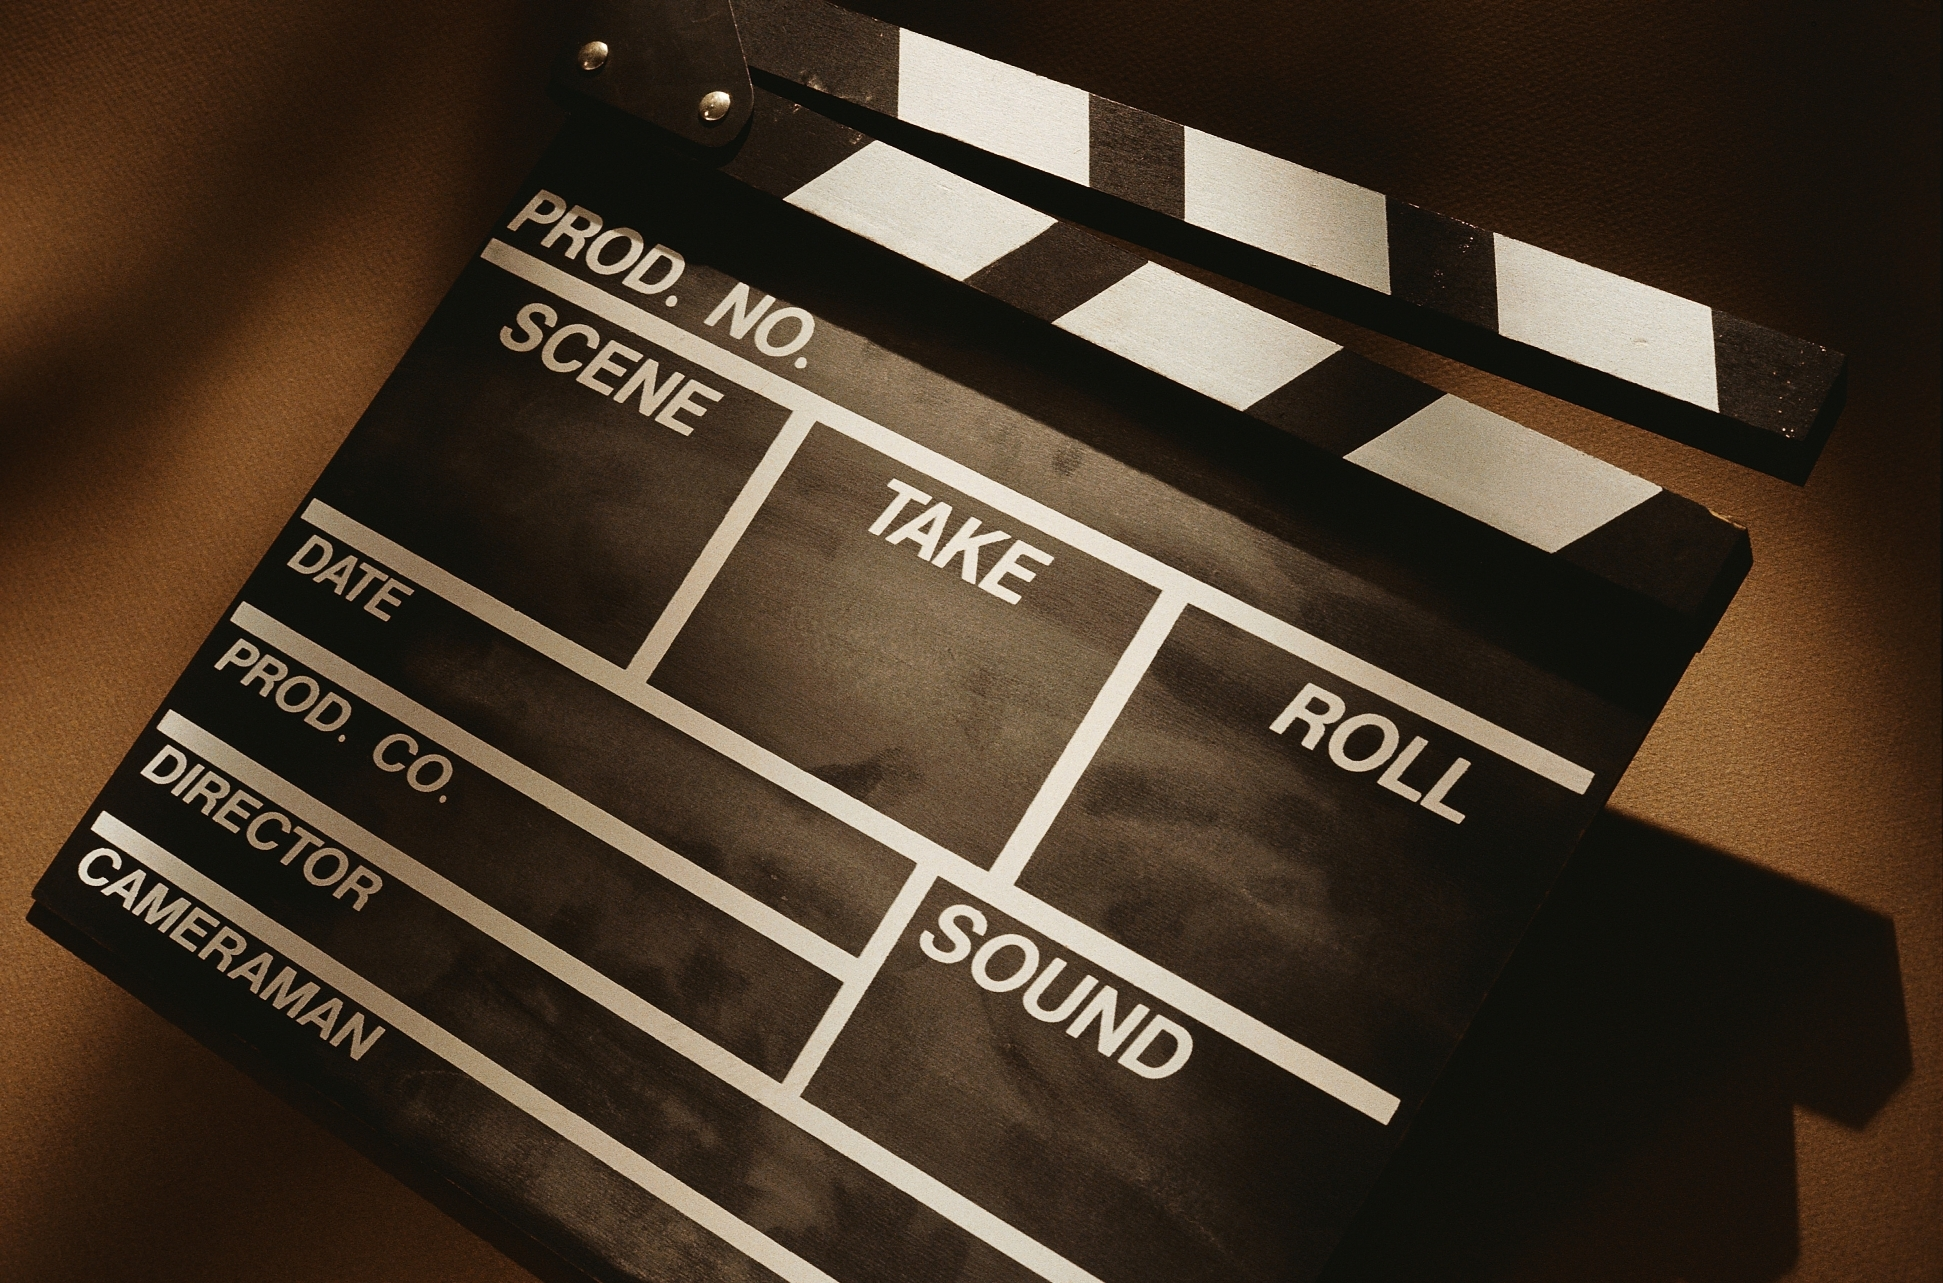 New Orleans Film Society ? Upcoming Films